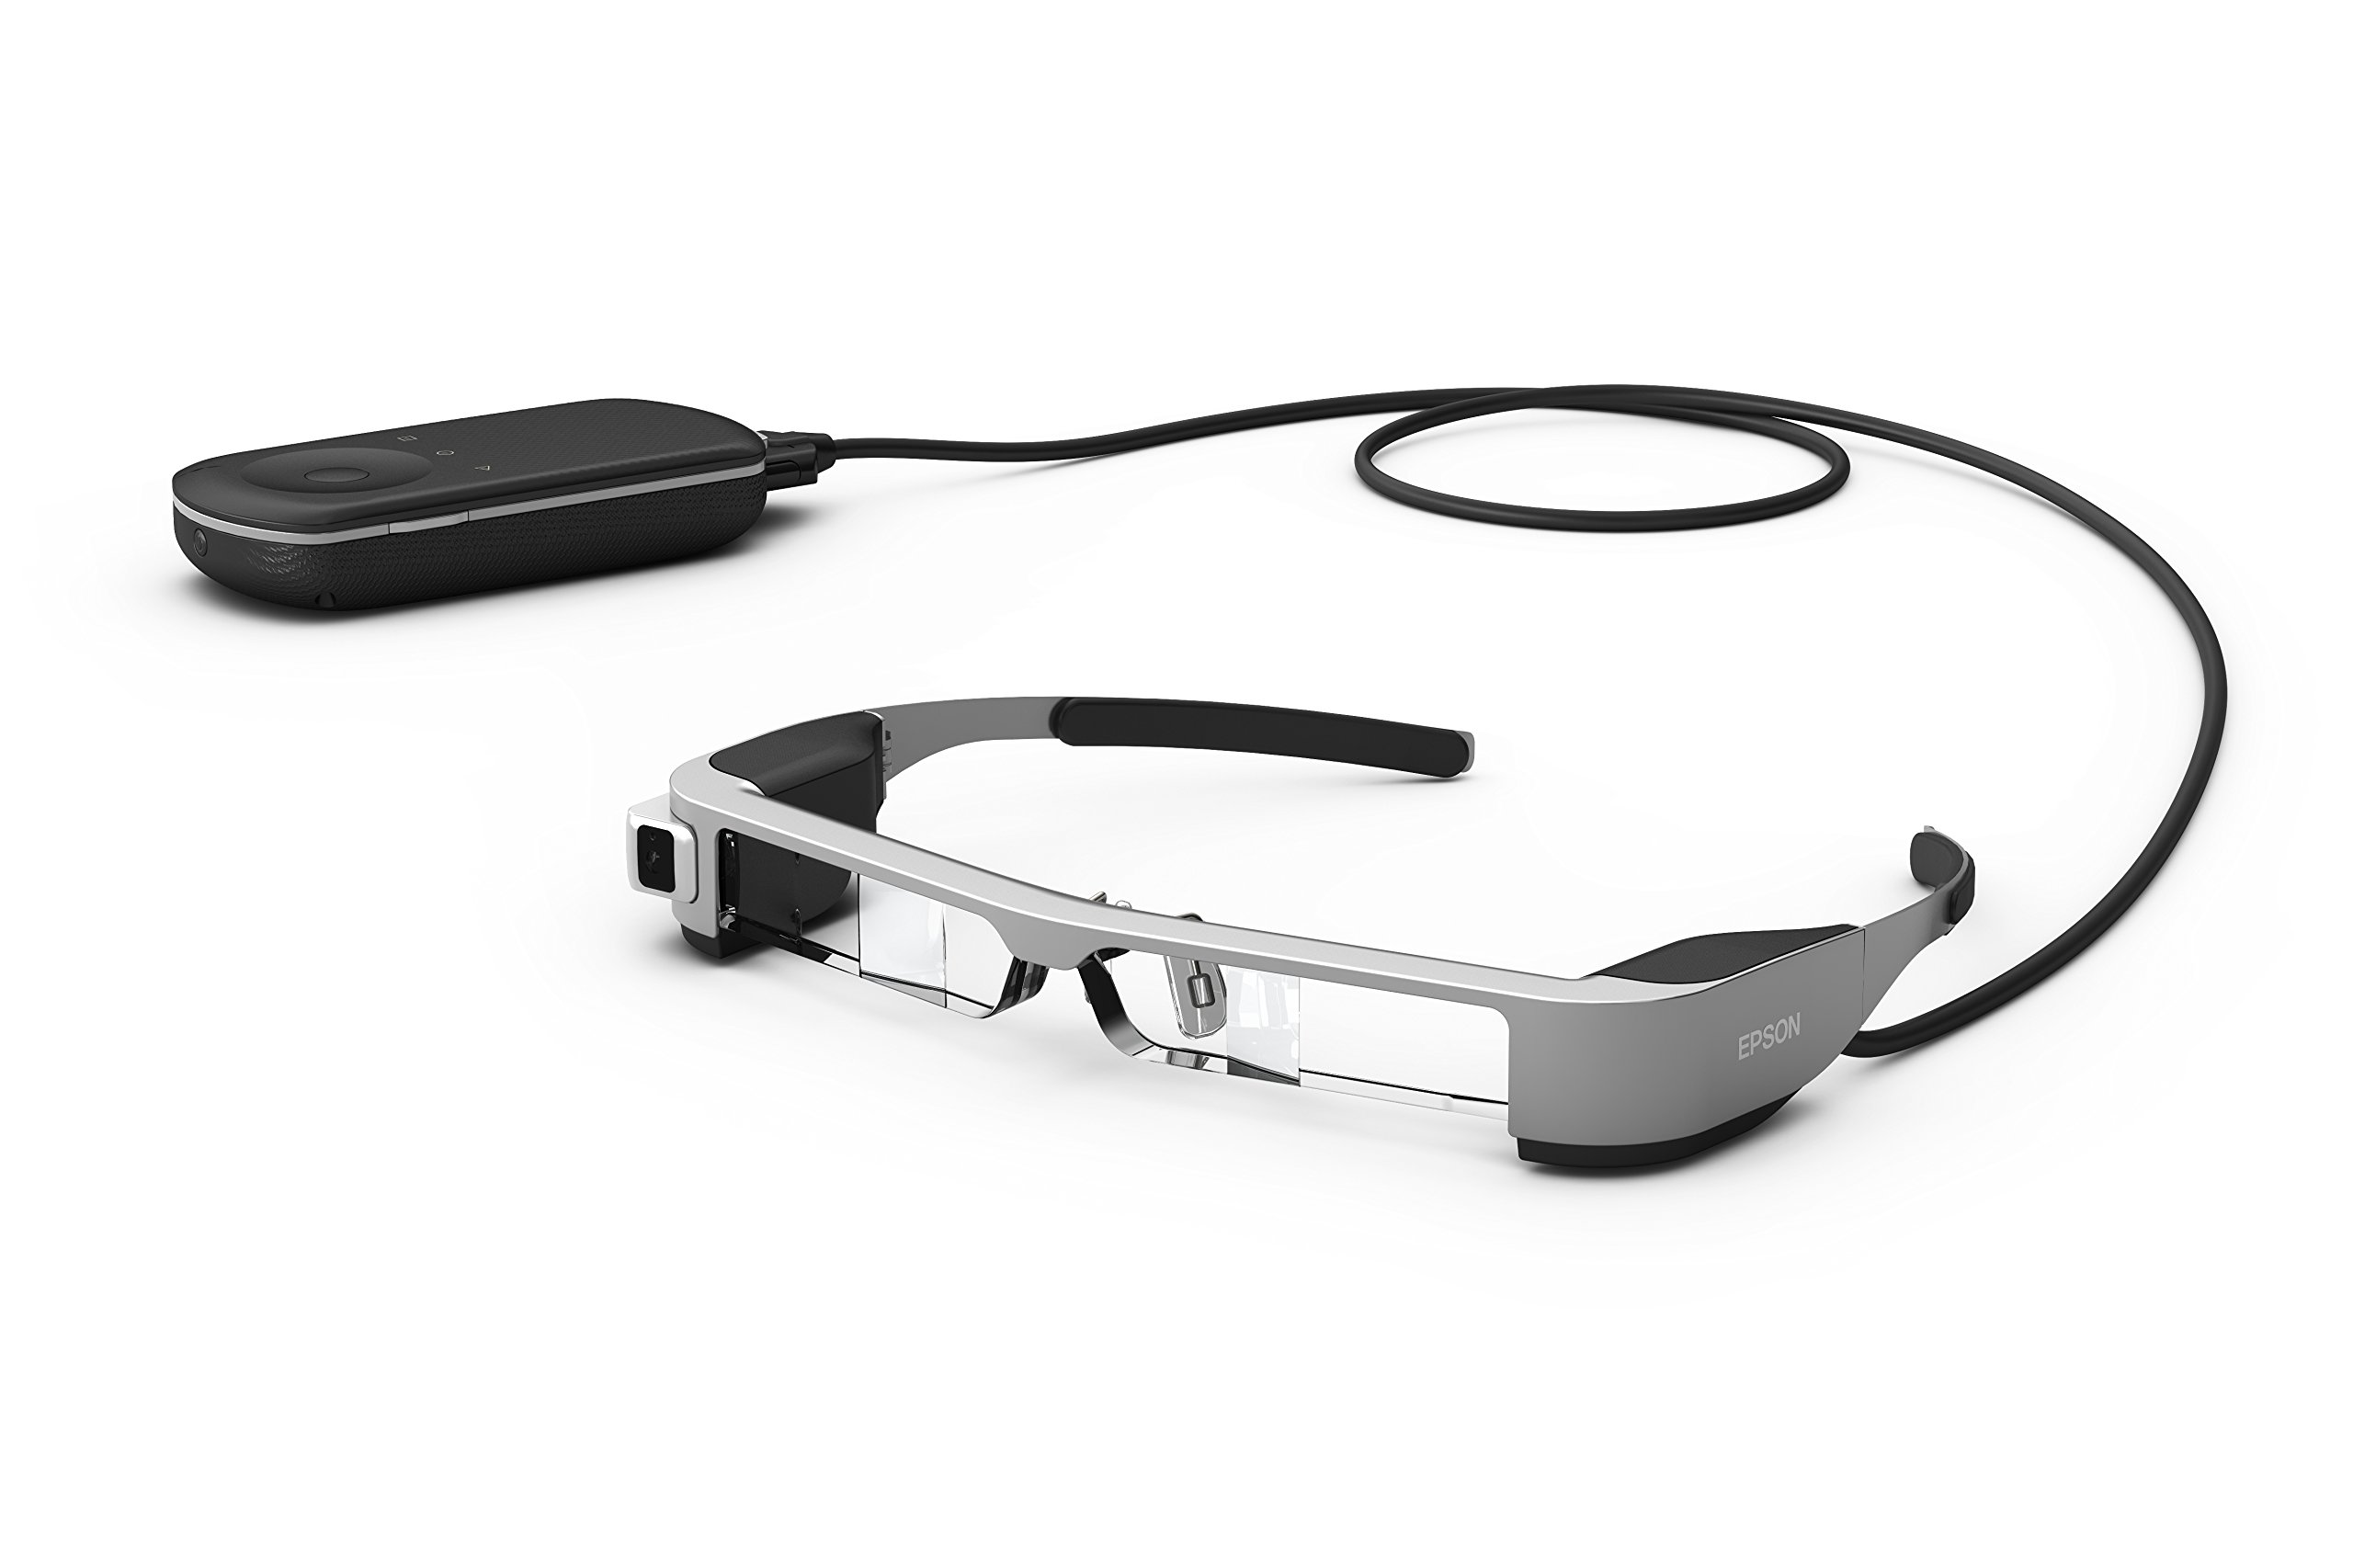 71eGqlrfYfL - Epson Moverio BT-300 - Augmented Reality Glasses with an OLED Display